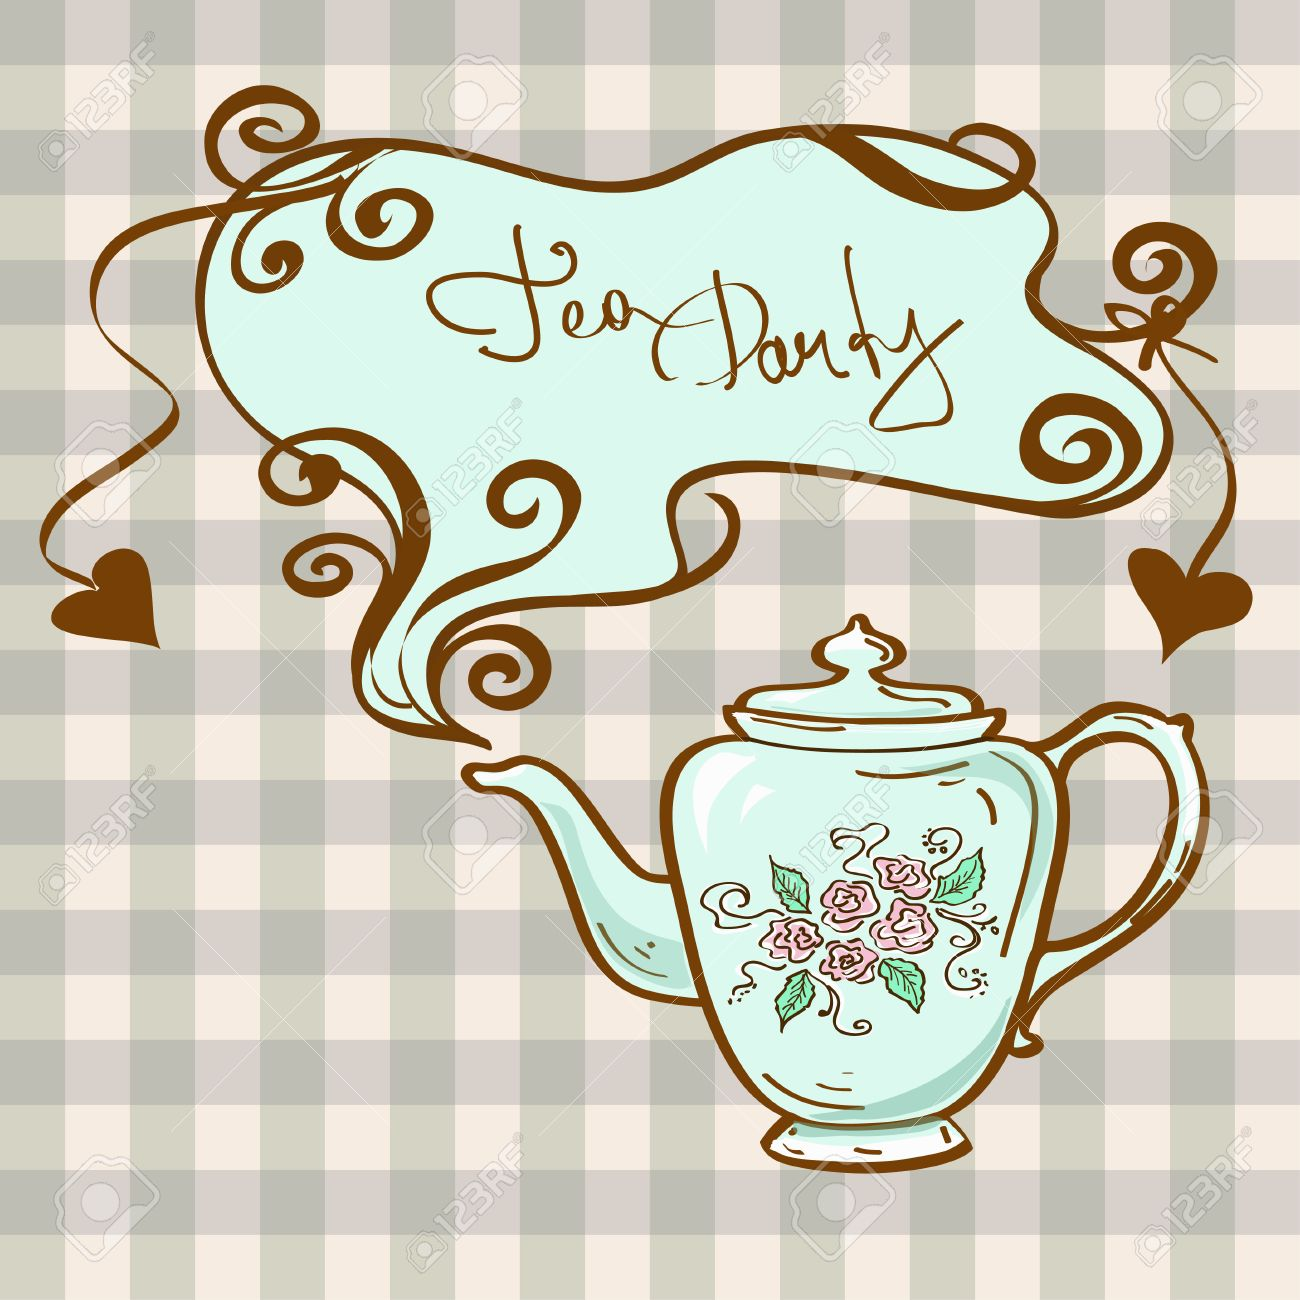 Tea Party Invitation With China Teapot On A Gray White Checkered ...